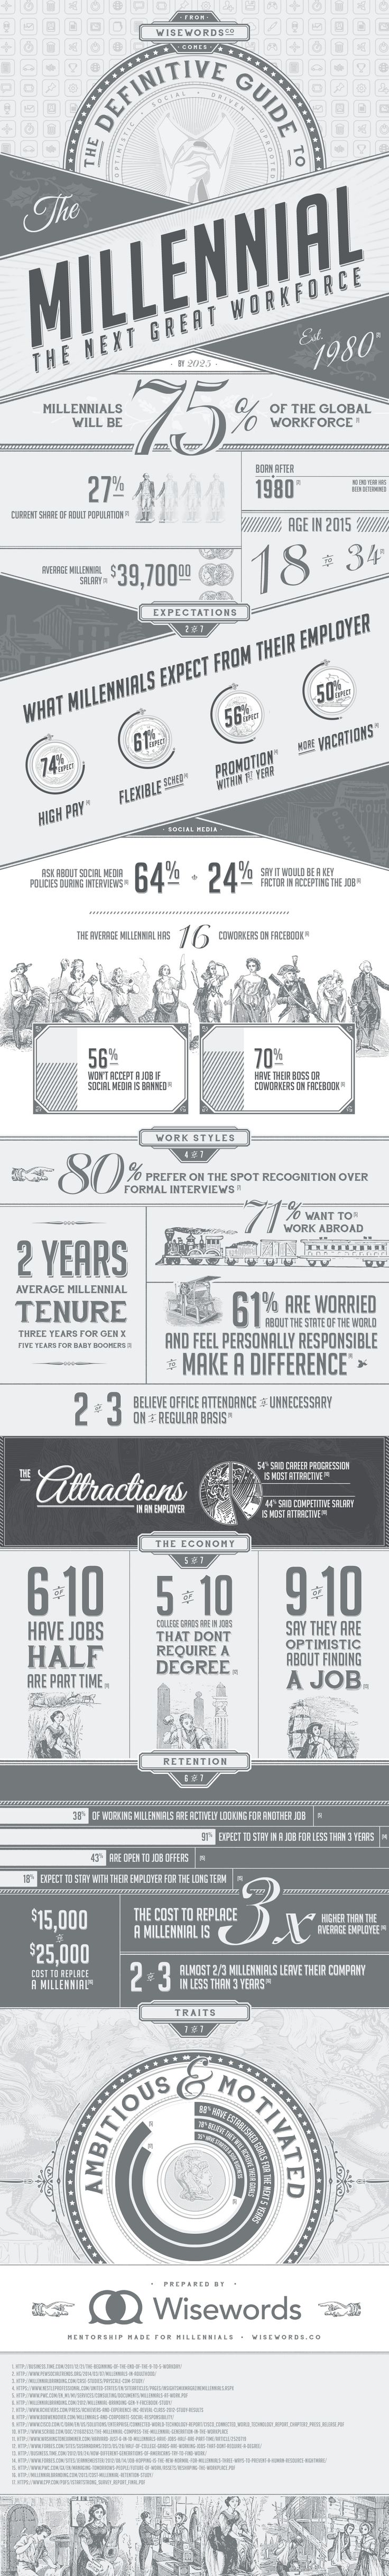 The Definitive Guide to the Millennial Workforce - Do you fancy an infographic? There are a lot of them online, but if you want your own please visit http://www.linfografico.com/prezzi/ Online girano molte infografiche, se ne vuoi realizzare una tutta tua visita http://www.linfografico.com/prezzi/